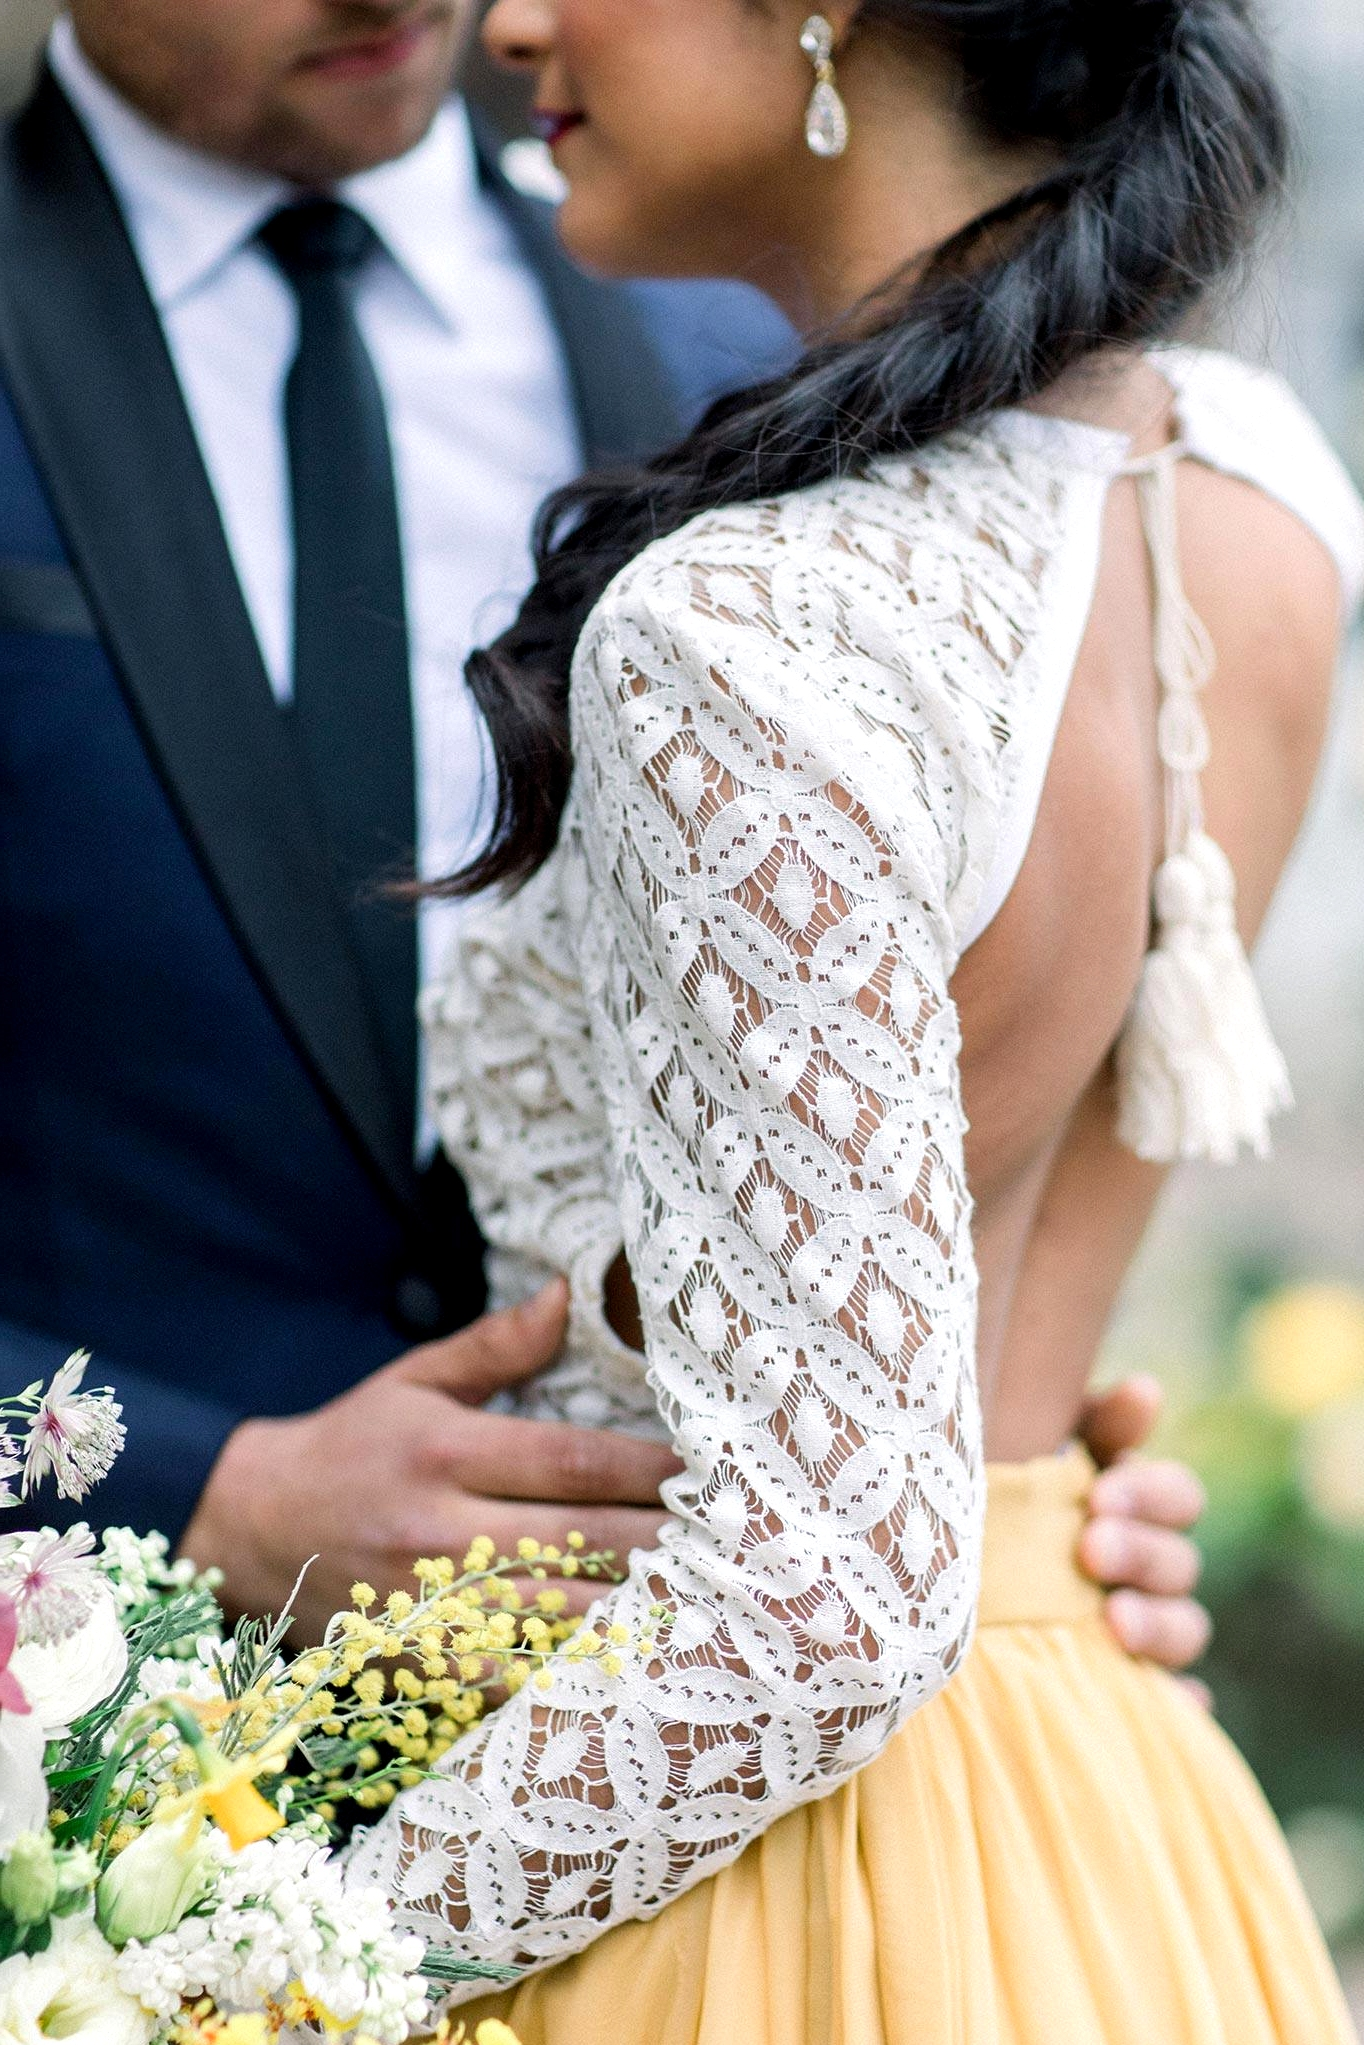 crochet lace top and mustard bridal skirt in this two piece wedding dress look with a colorful spring garden bouquet